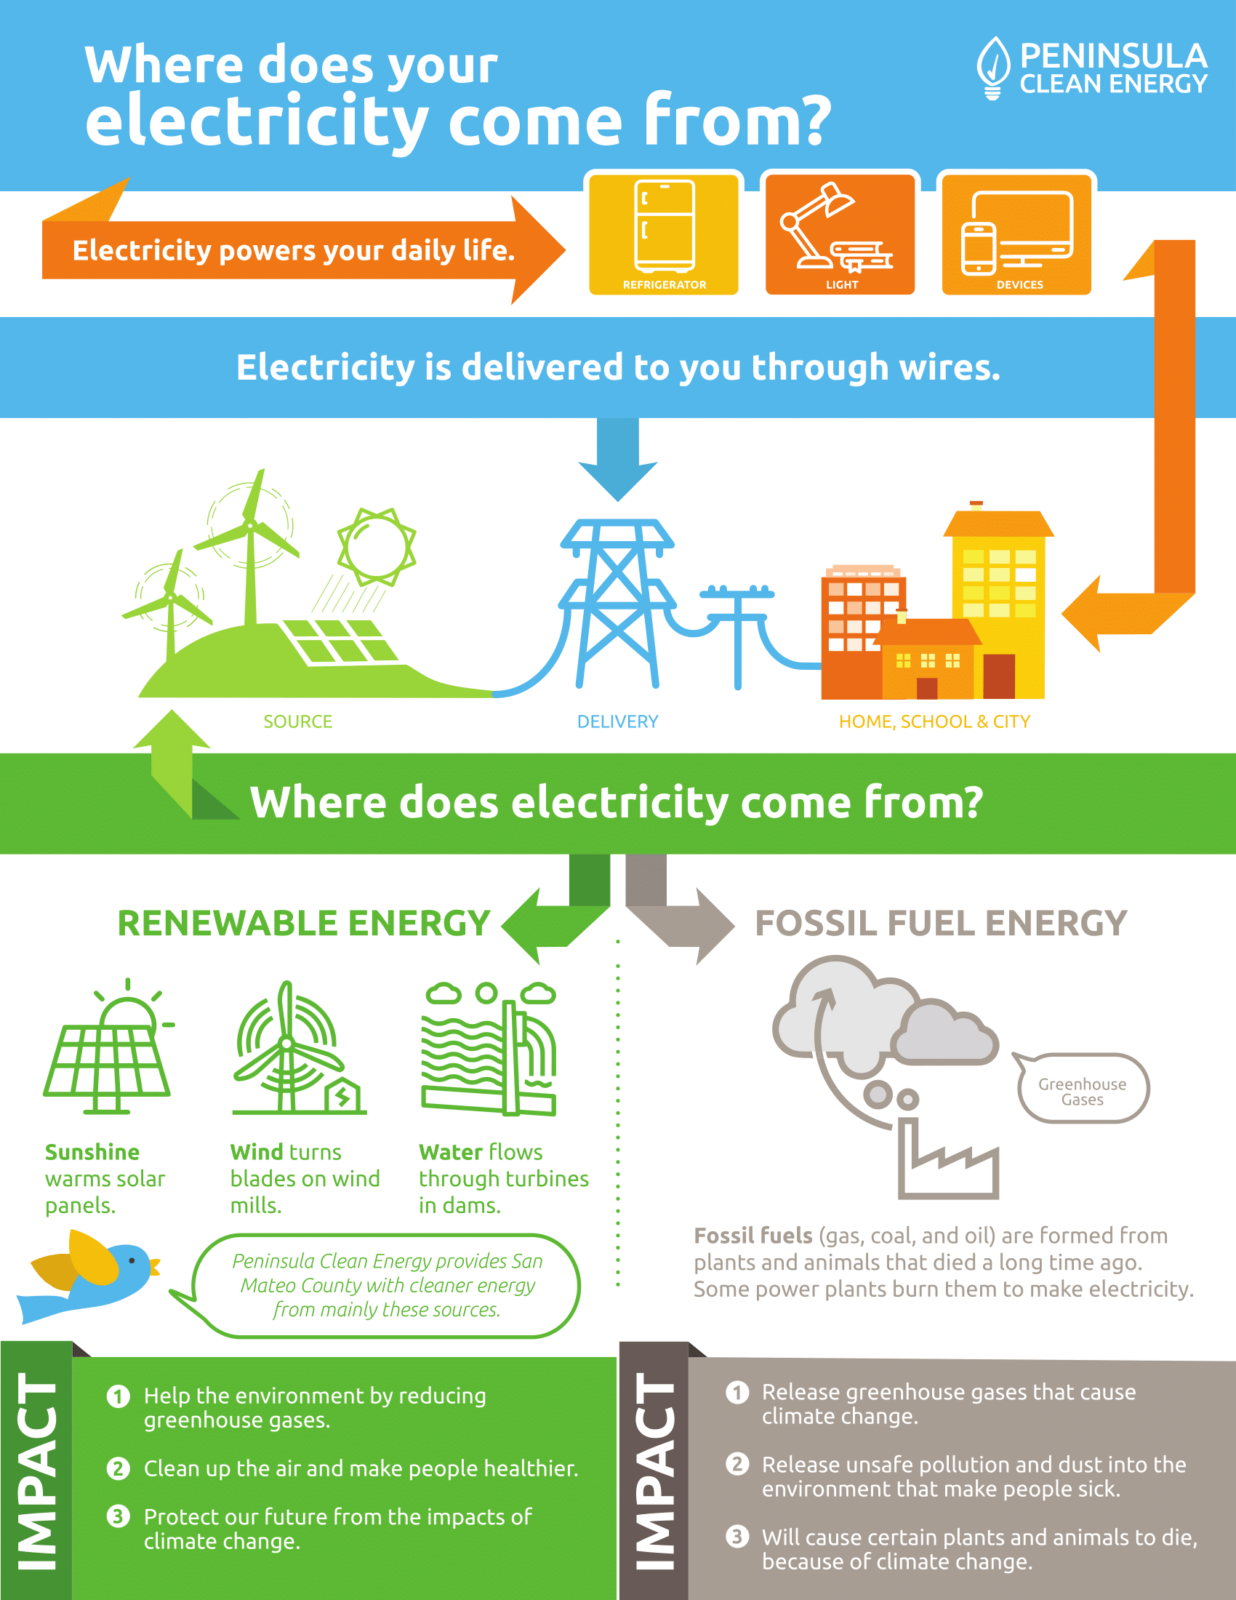 Where does your electricity come from?